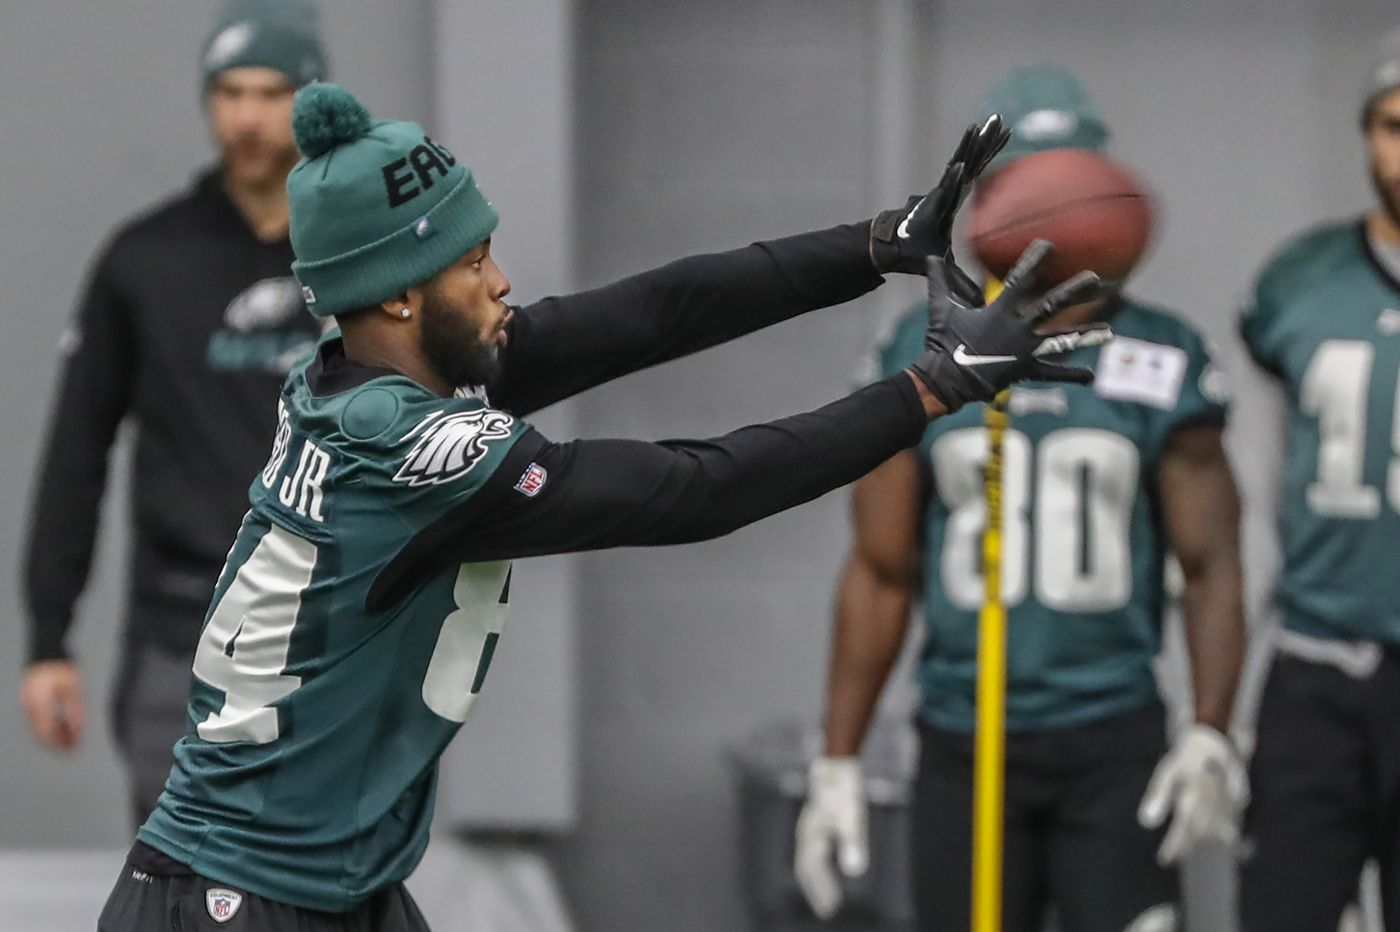 Meet Keith Williams, who helped turn Greg Ward from a practice-squad afterthought into a season-saver for the Eagles